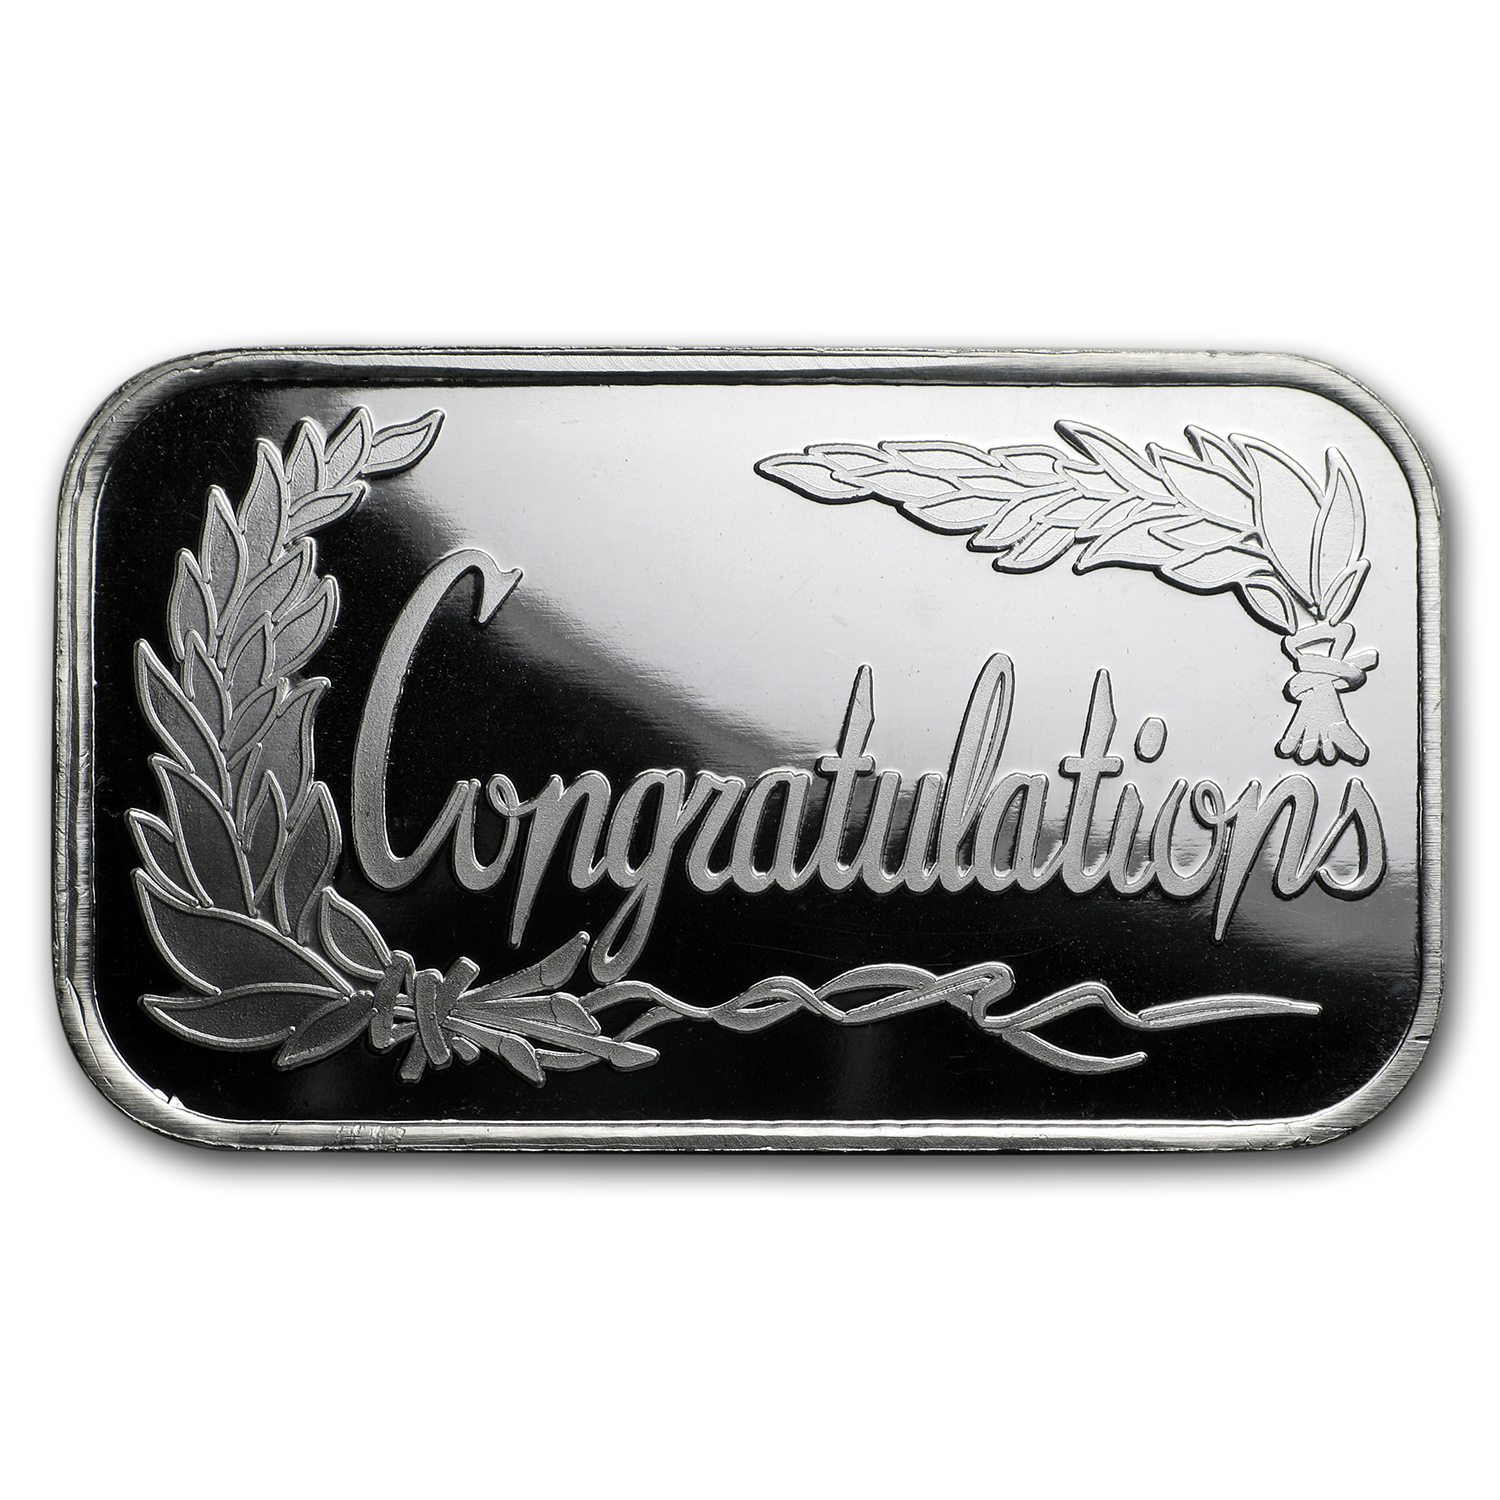 1 oz Silver Bar - Congratulations